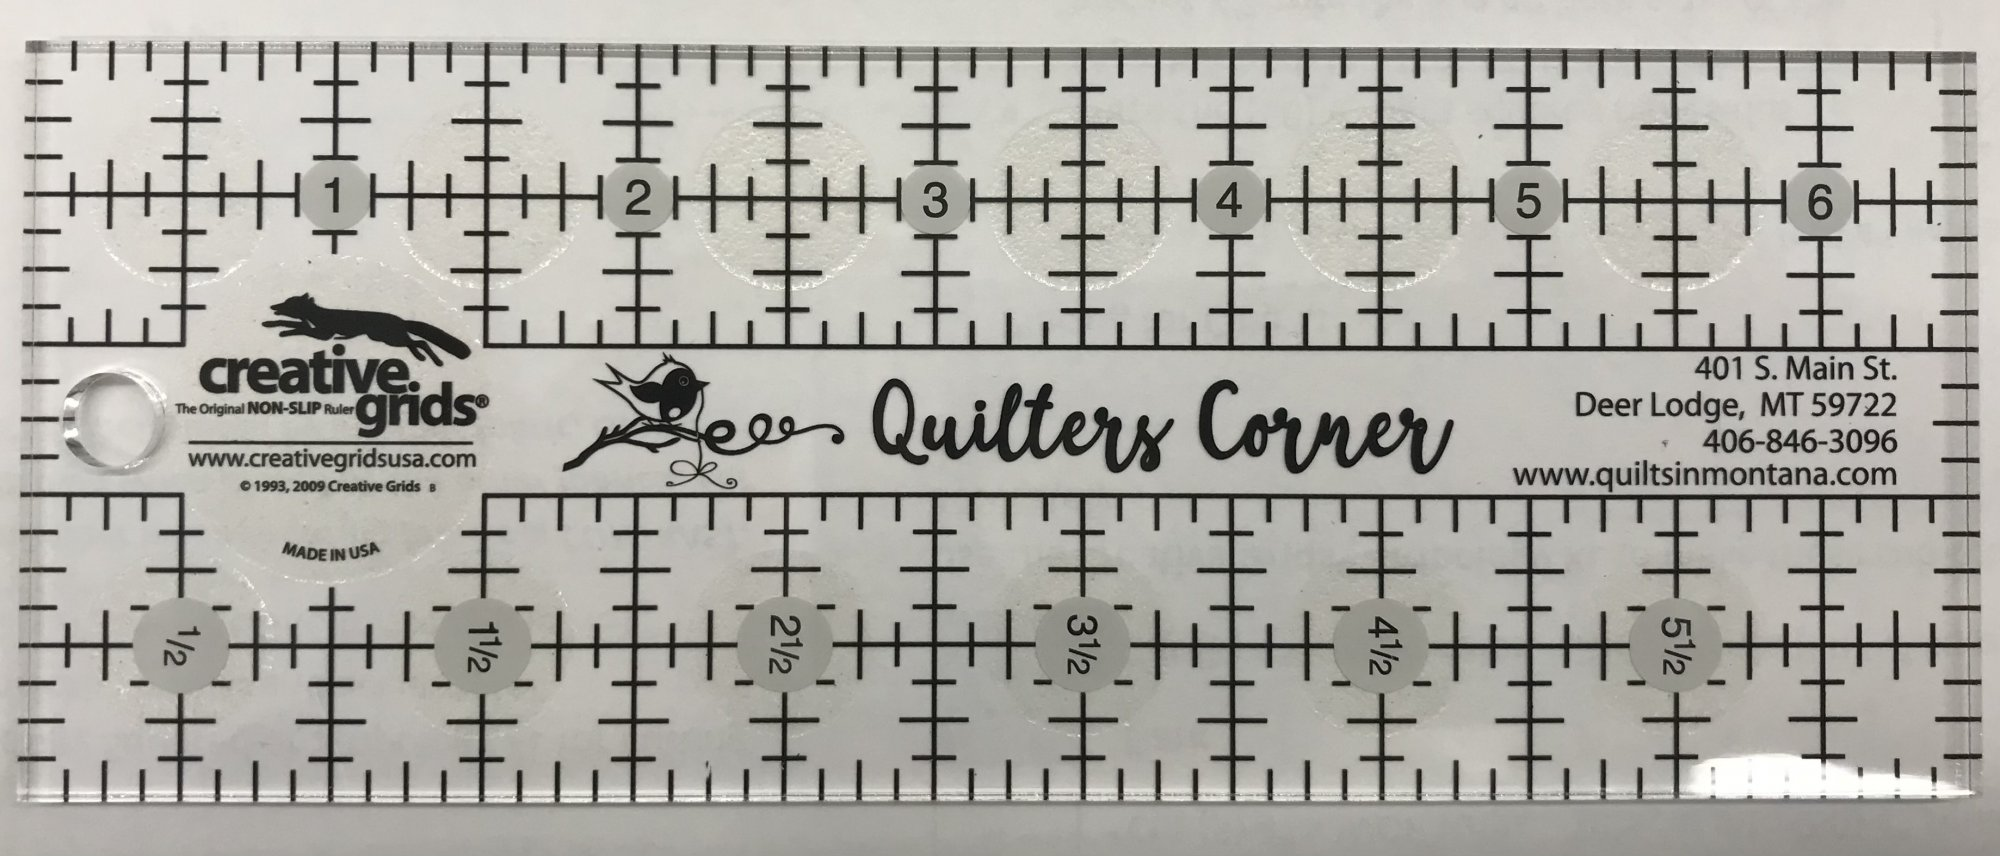 Creative Grids Quilters Corner Shop Ruler 2 1/2 by 6 1/2